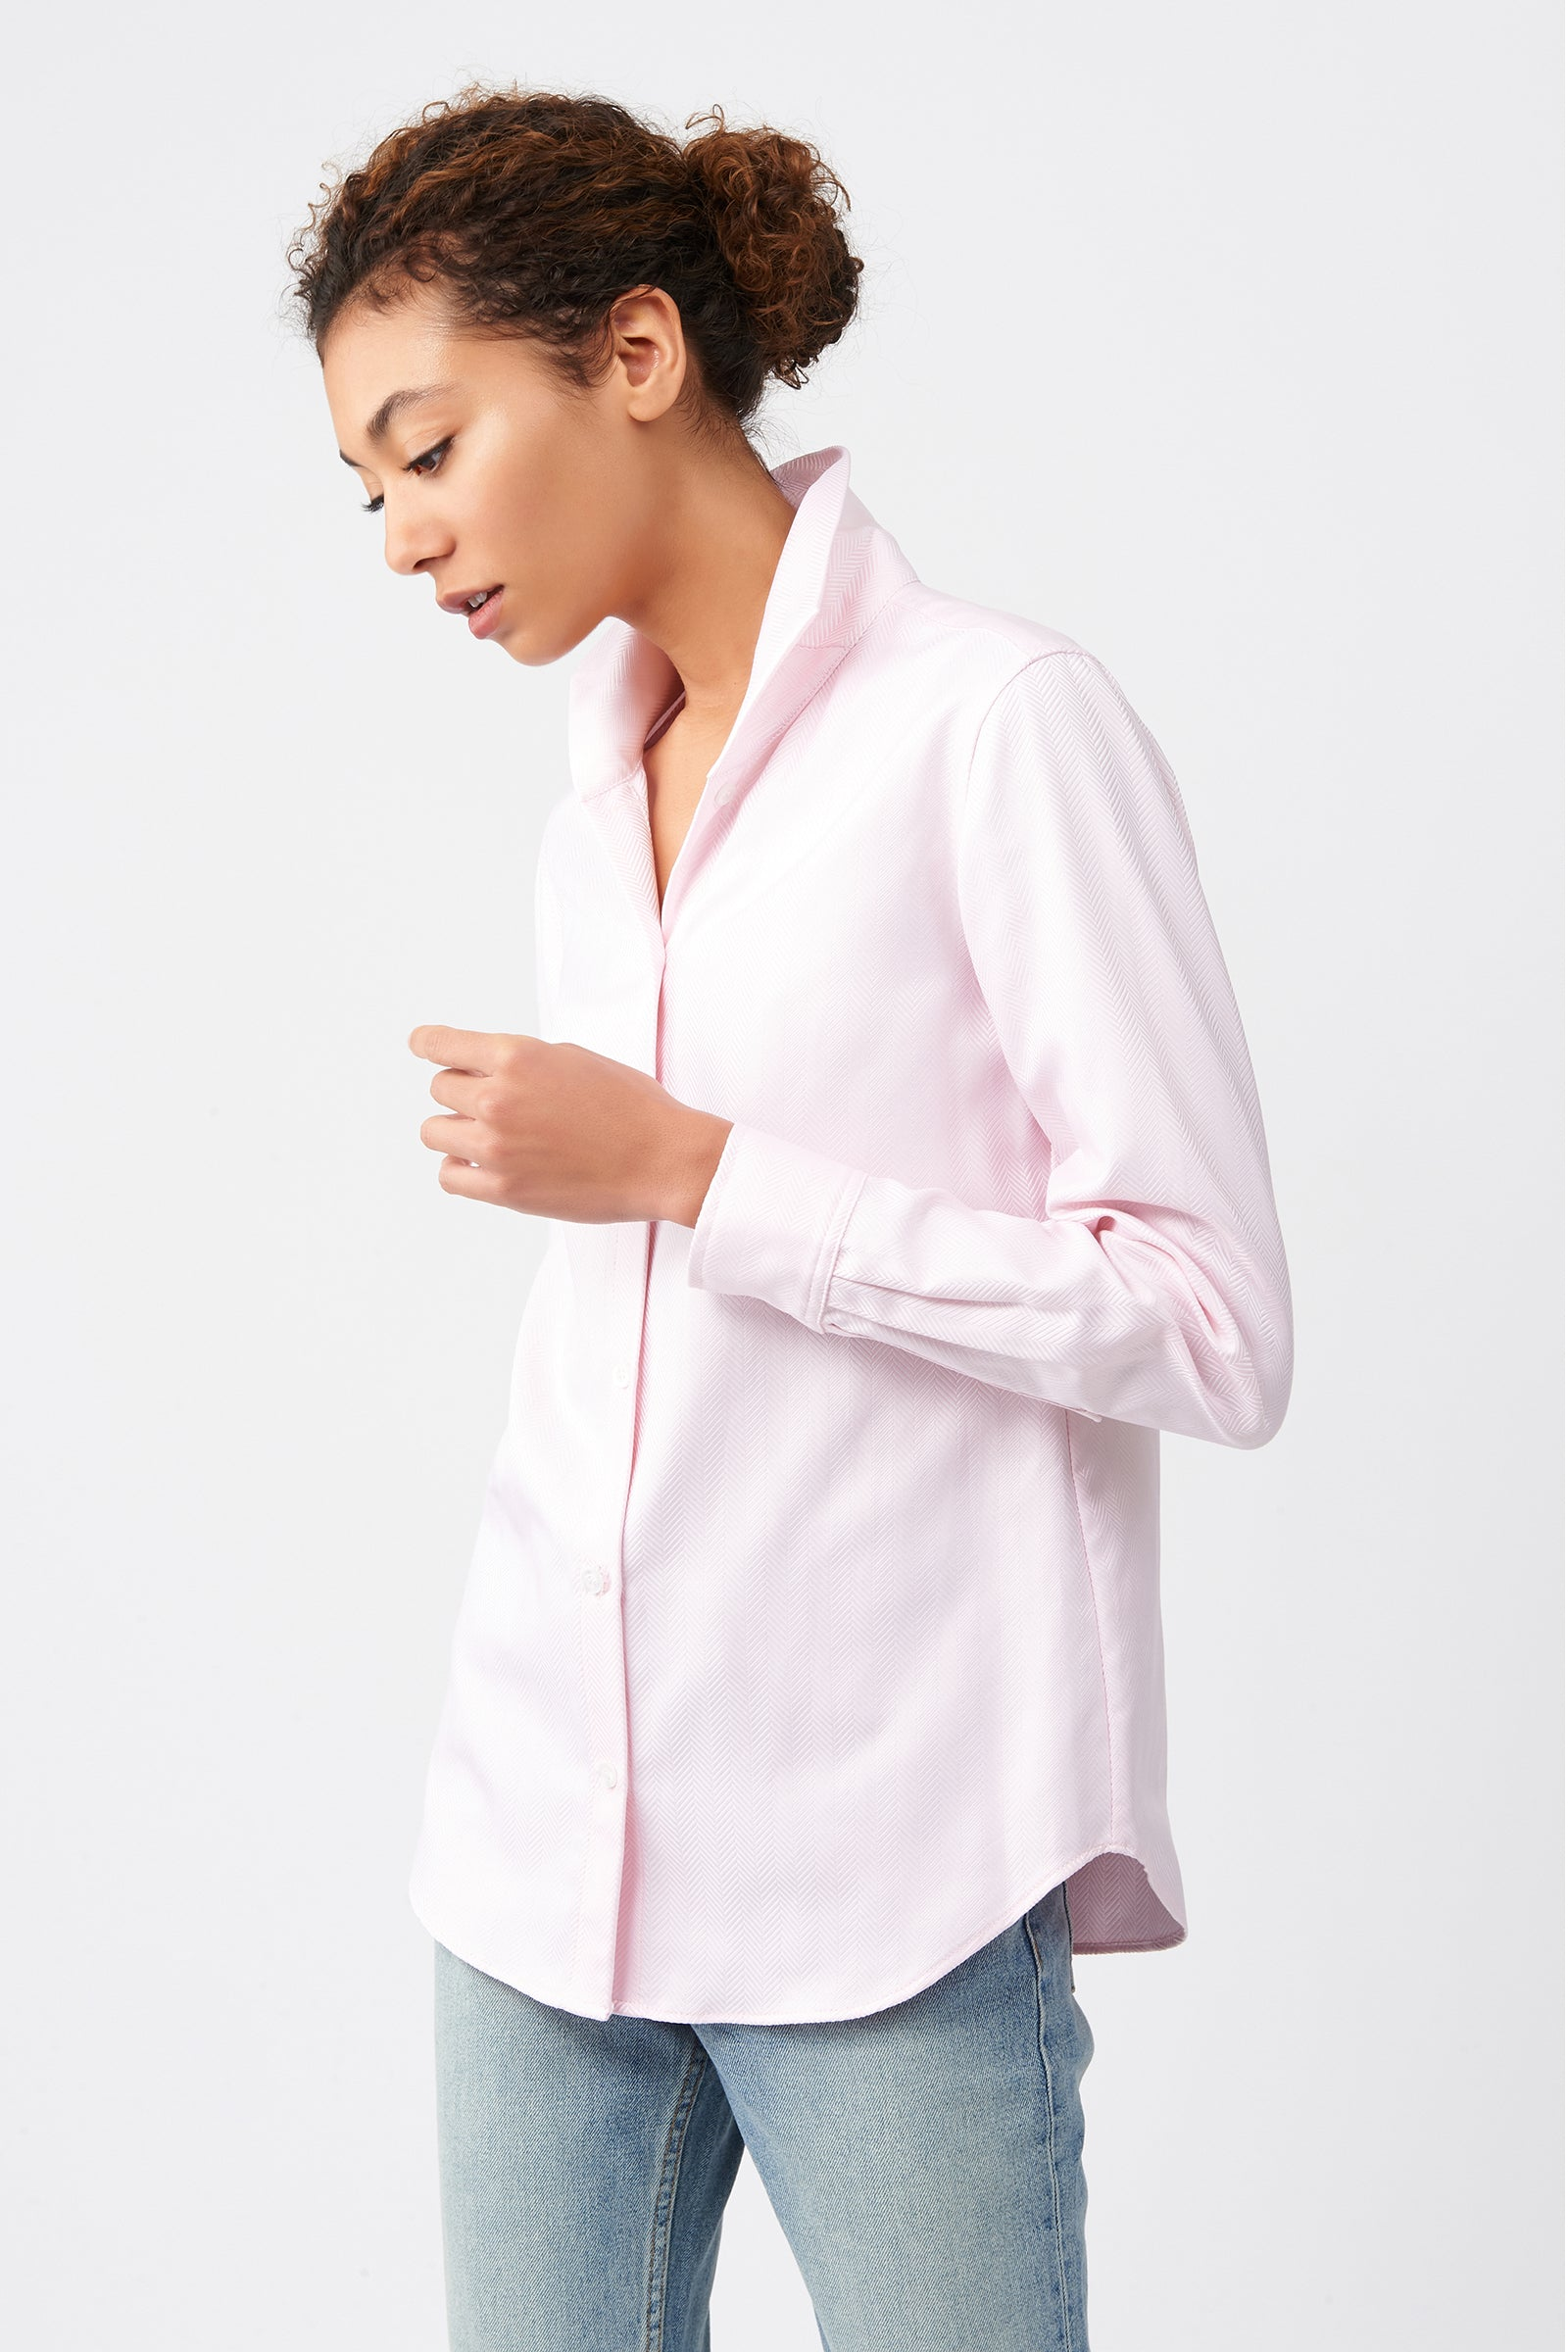 Kal Rieman Ginna Box Pleat Shirt in Pink Herringbone on Model Front Side View